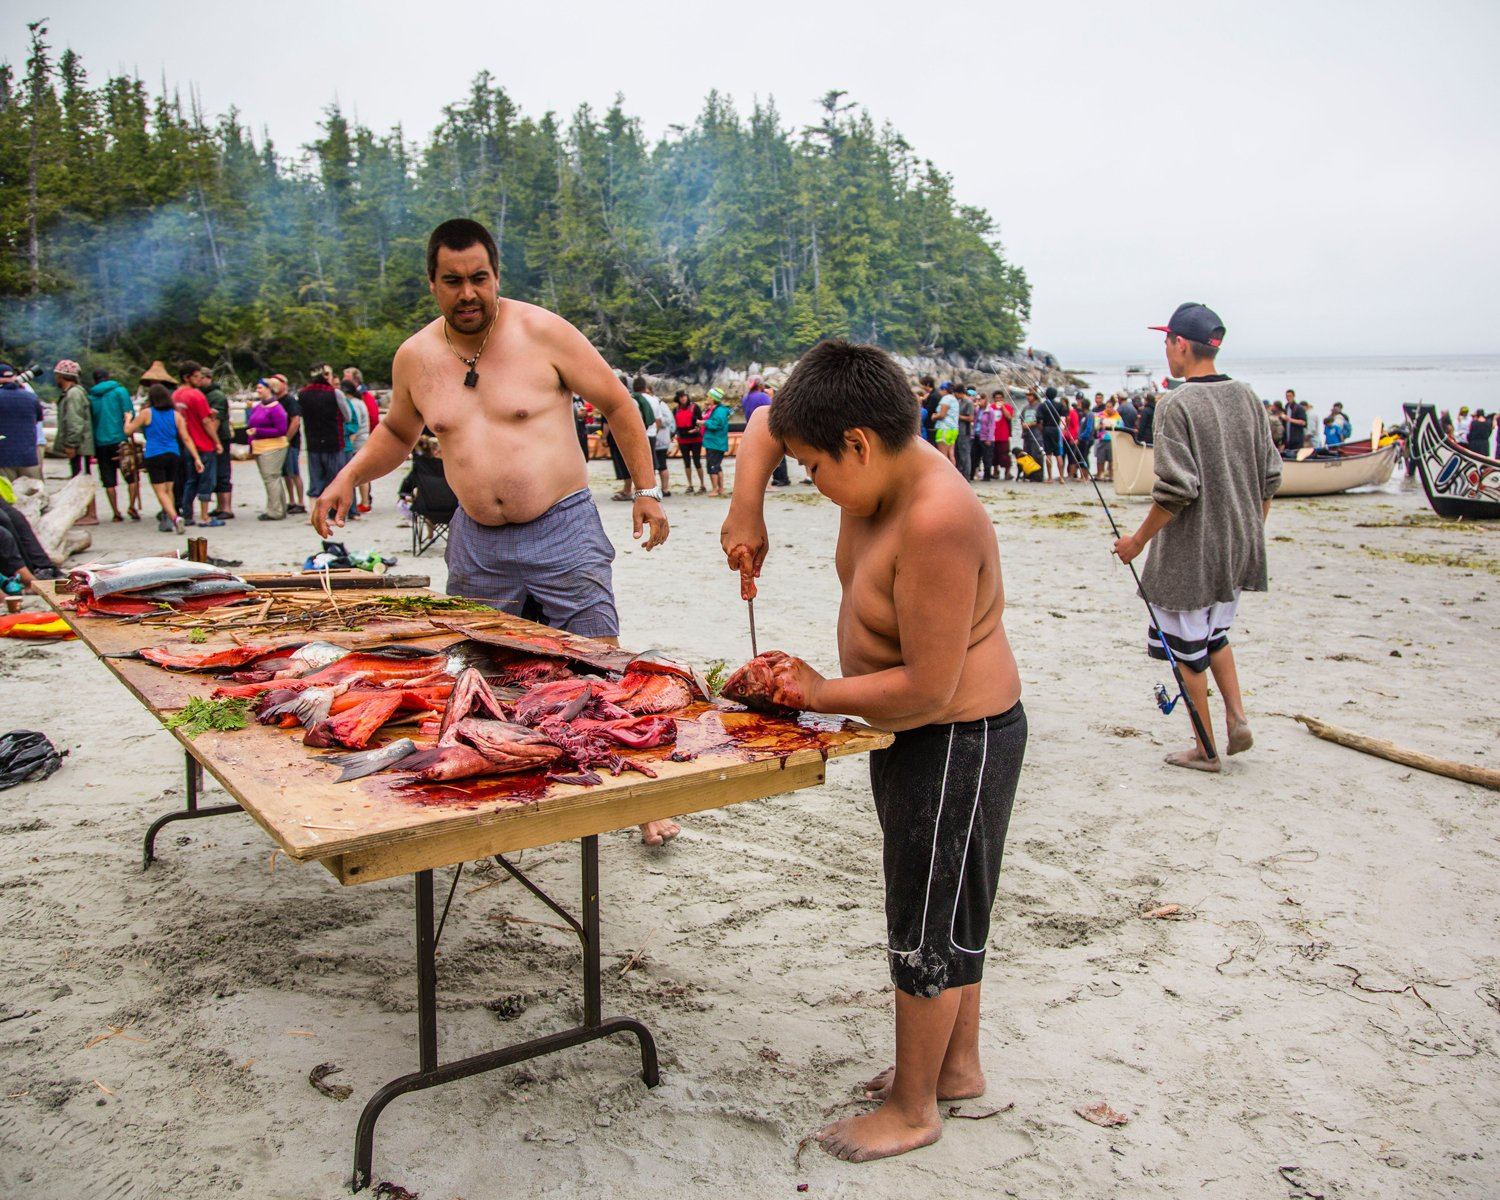 Two members of the Wuikinuxv First Nation prepare wild salmon to feed to guests to their territory during the annual Tribal Canoe Journey, which brings together First Nations from across the Pacific Northwest.